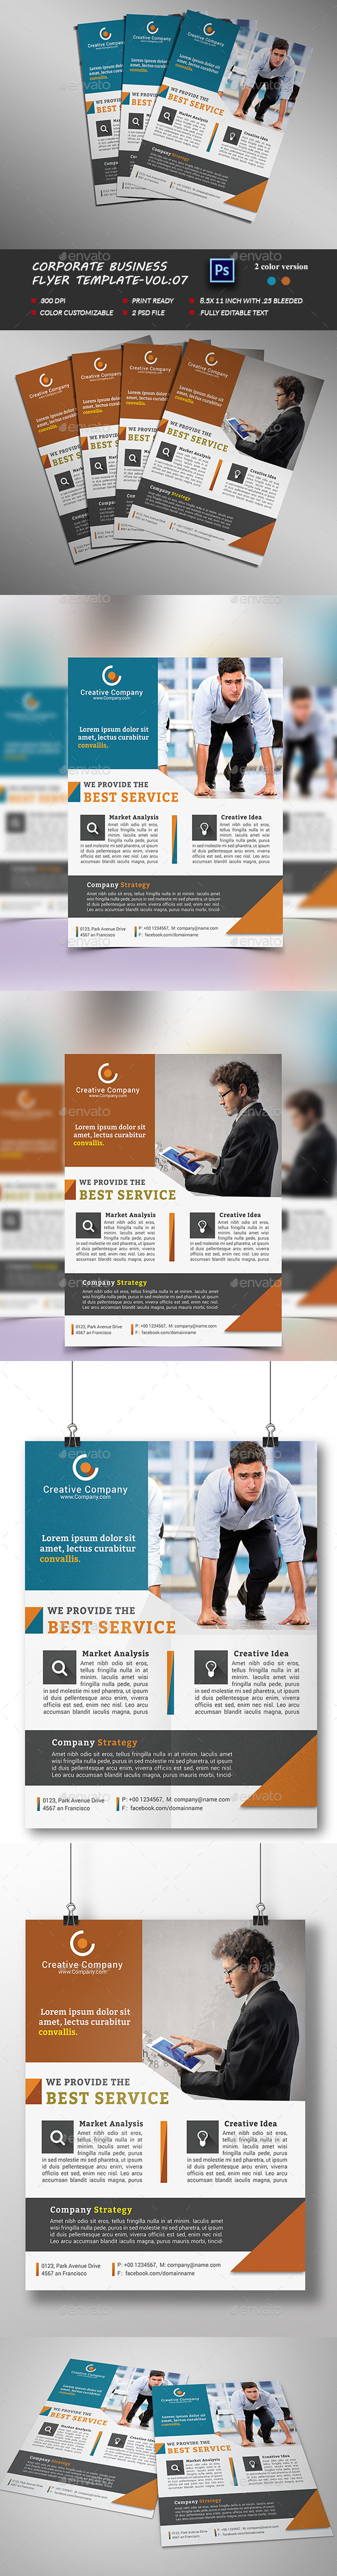 Corporate Business Flyer Template vol:07 - Corporate Flyers